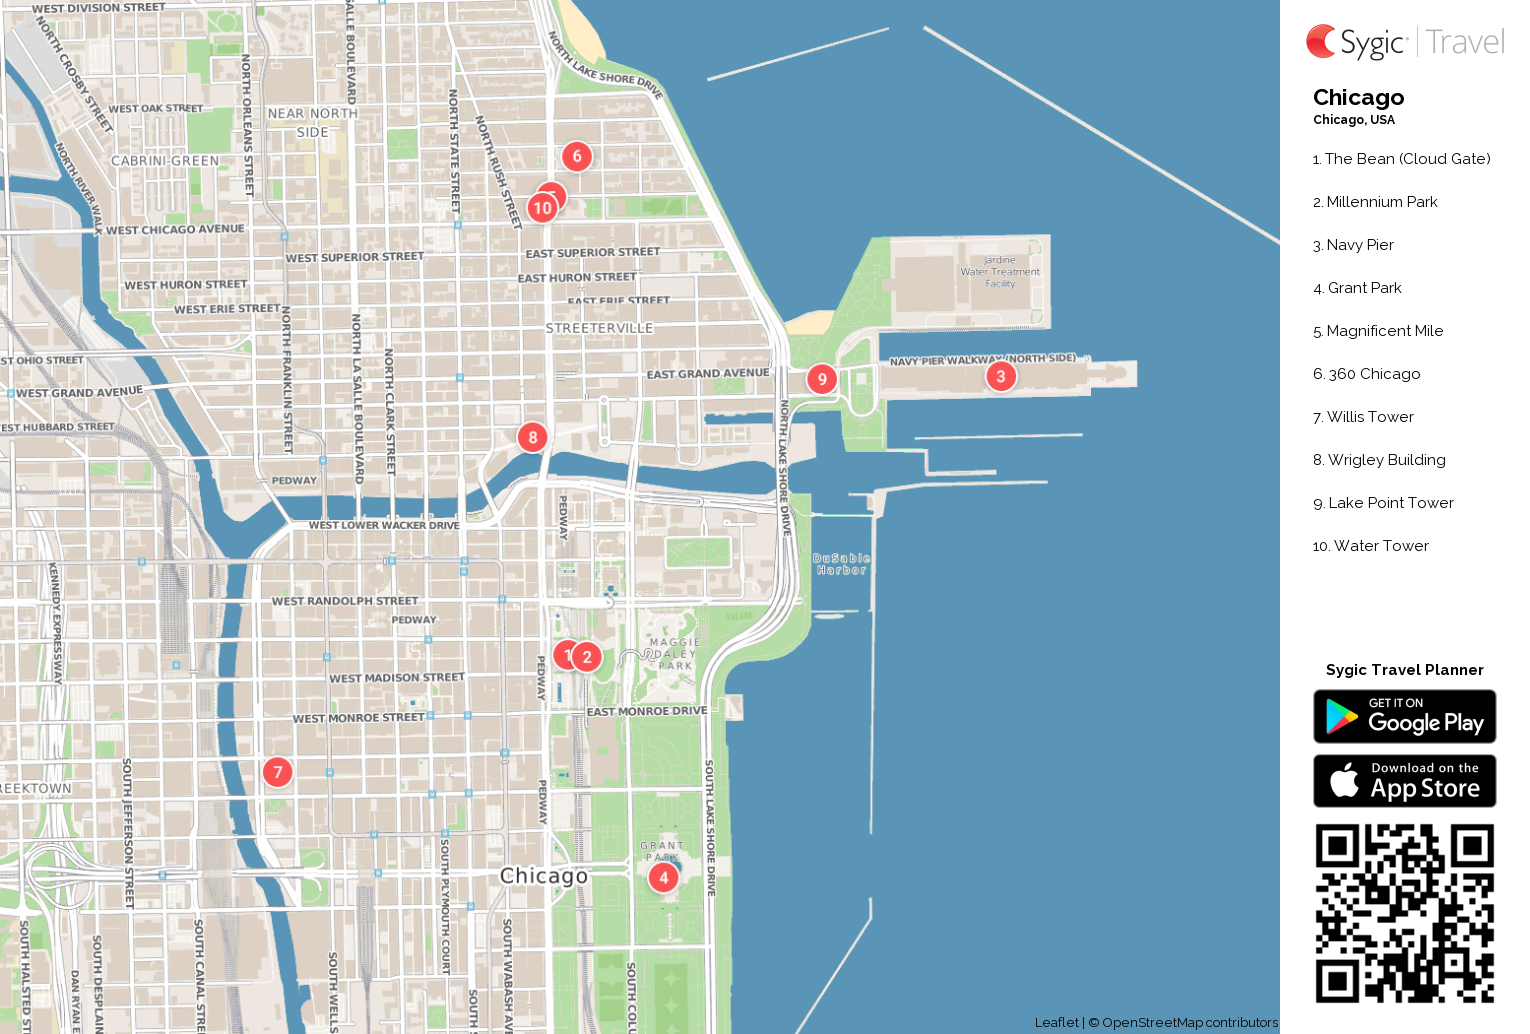 picture about Printable Map of Chicago named Chicago Printable Vacationer Map Sygic Generate